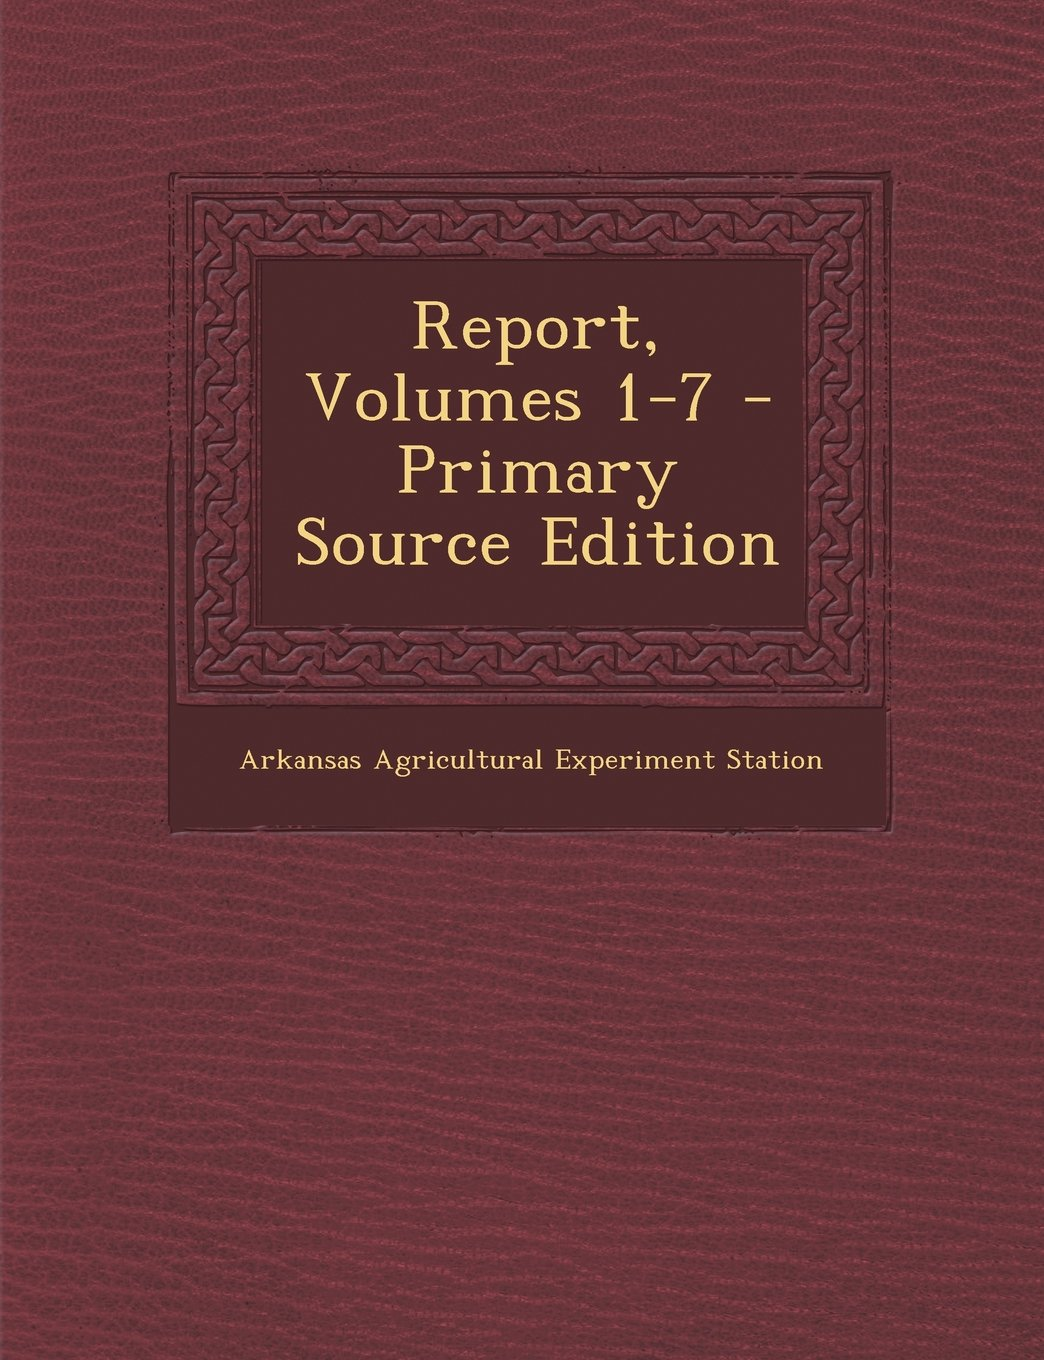 Download Report, Volumes 1-7 - Primary Source Edition ebook